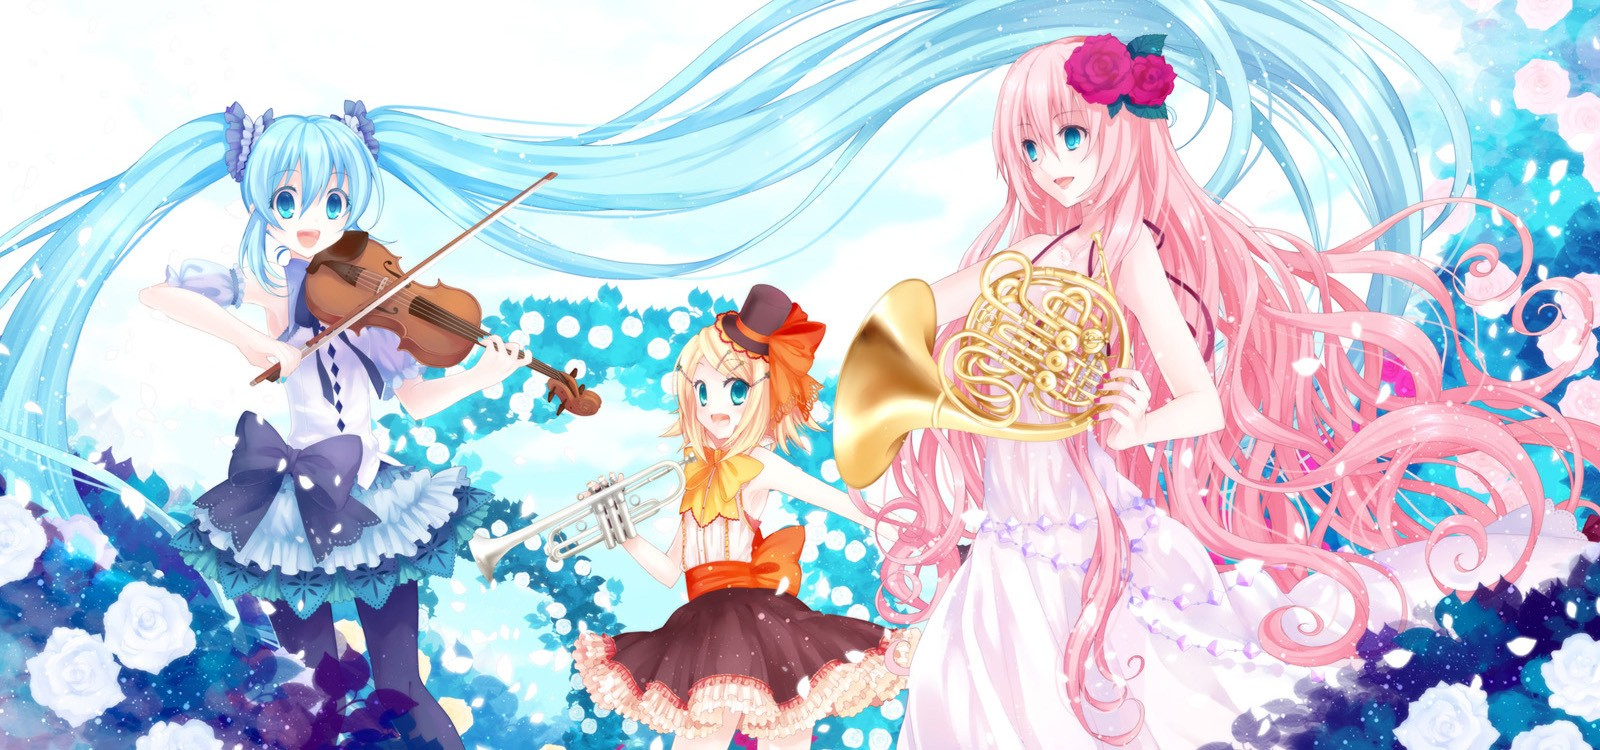 Kawaii Anime Images Vocaloid Wallpaper HD Wallpaper And